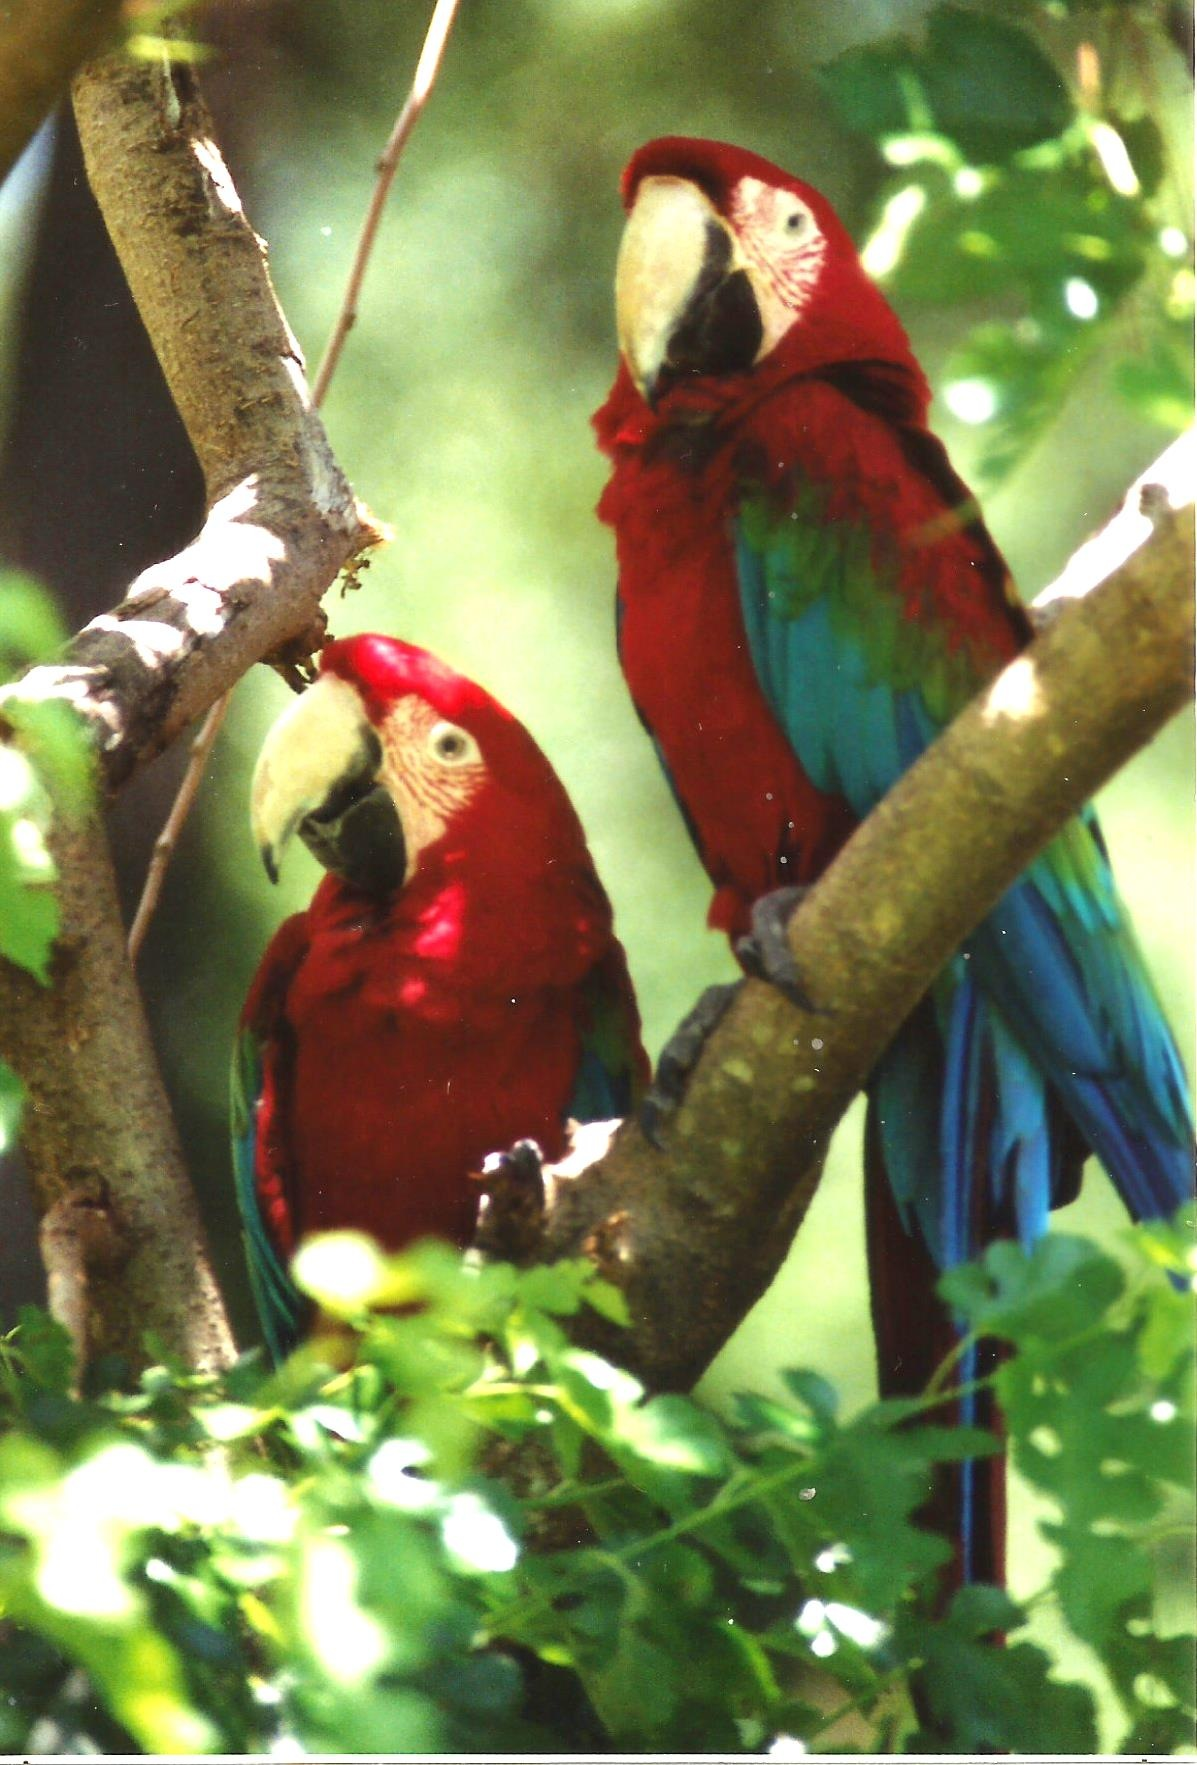 PICTURE PERFECT PARROTS by Hope Atwood Dayhoff